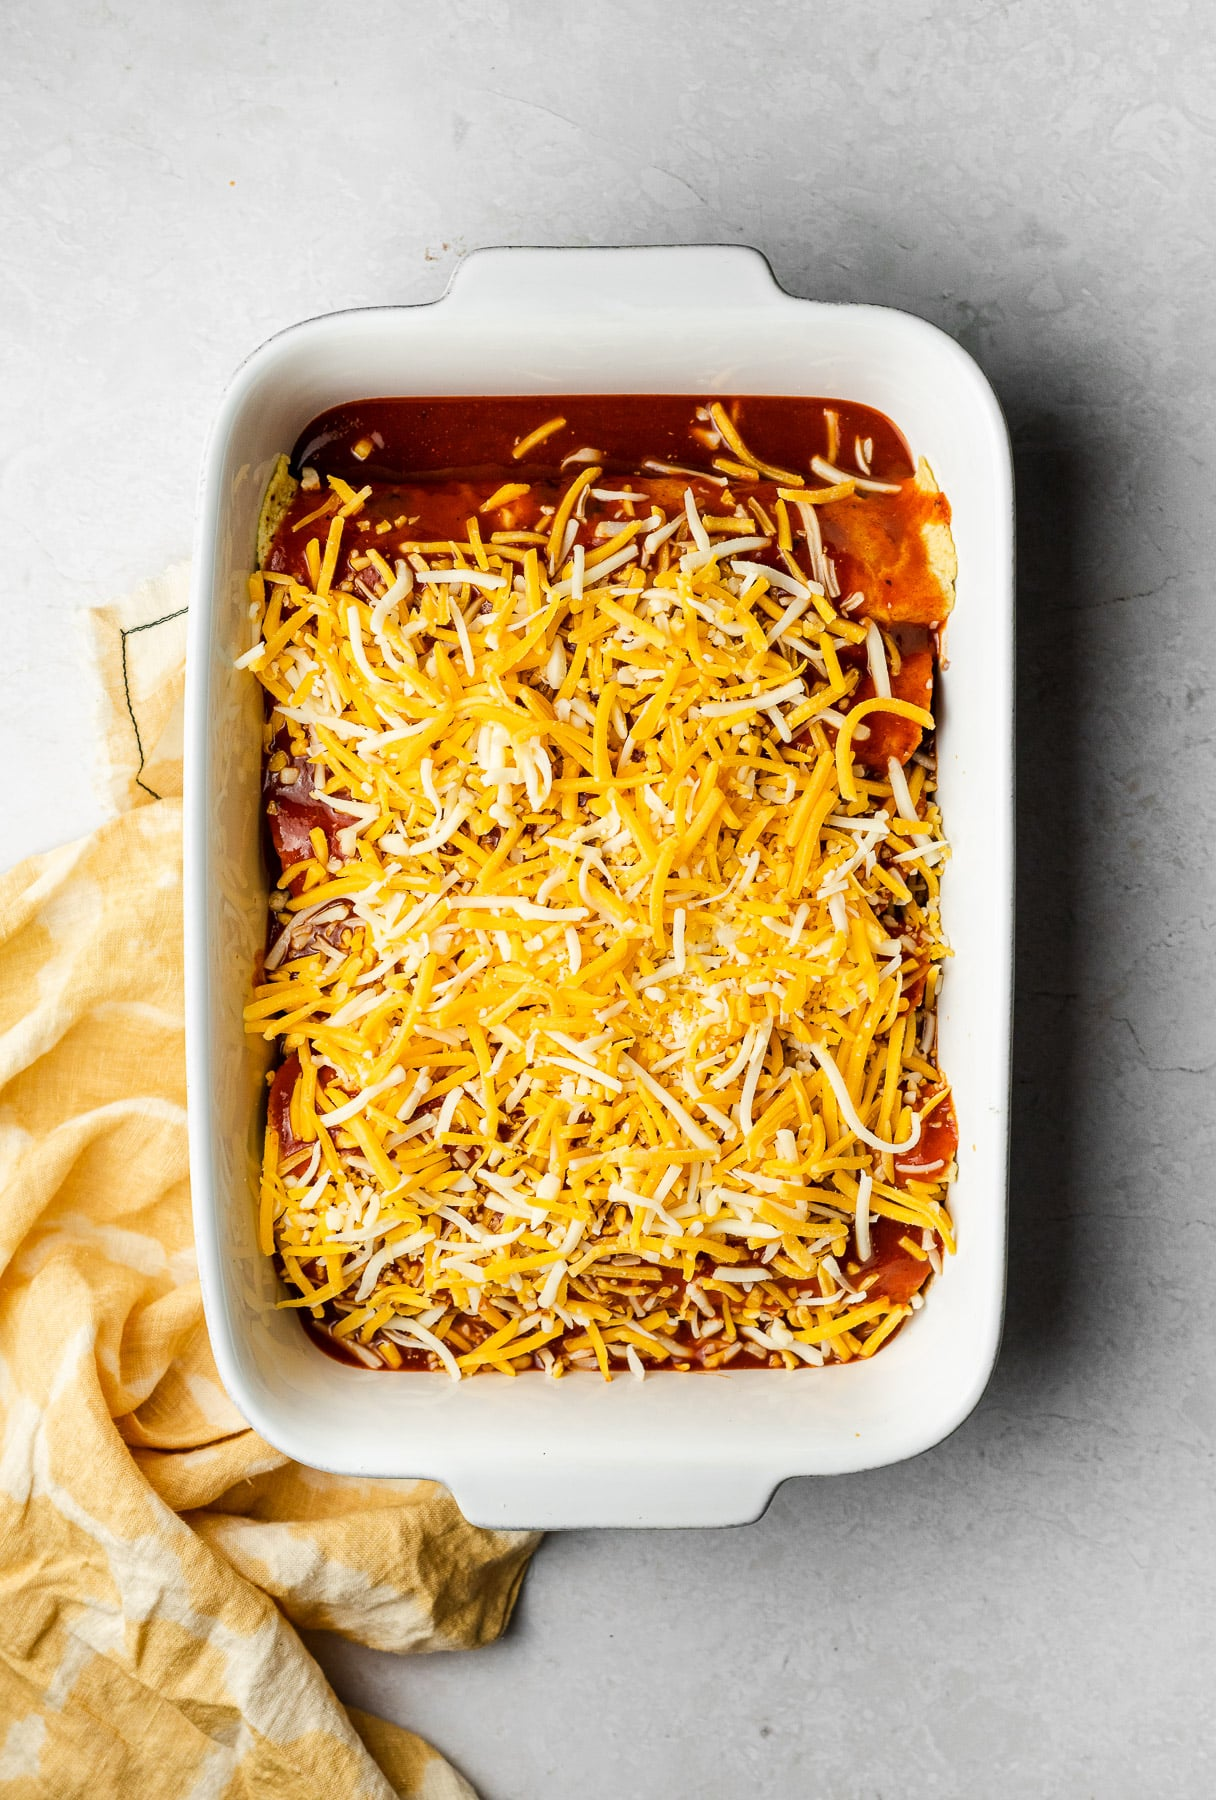 stuffed corn tortillas in a white baker topped with enchilada sauce and shredded cheese